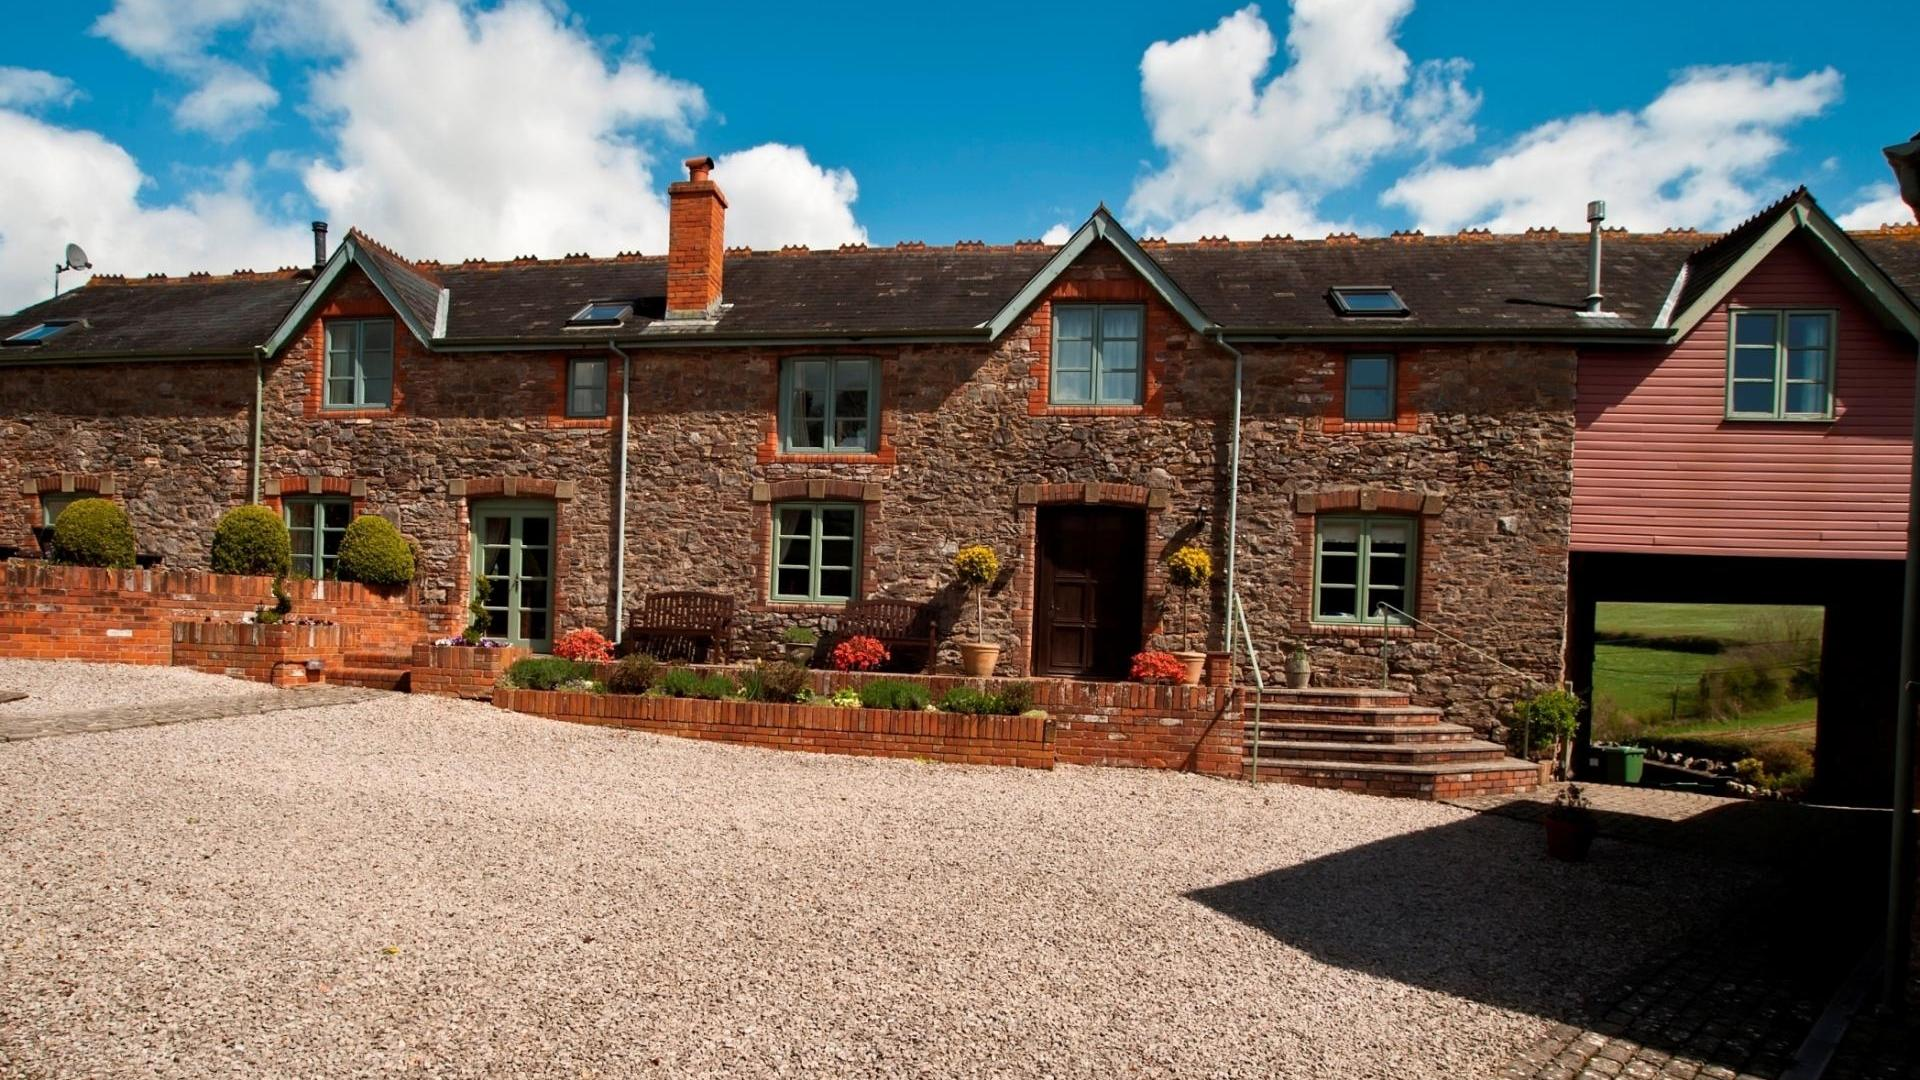 6 Bedroom Private cottage/shared grounds in Devon, United Kingdom